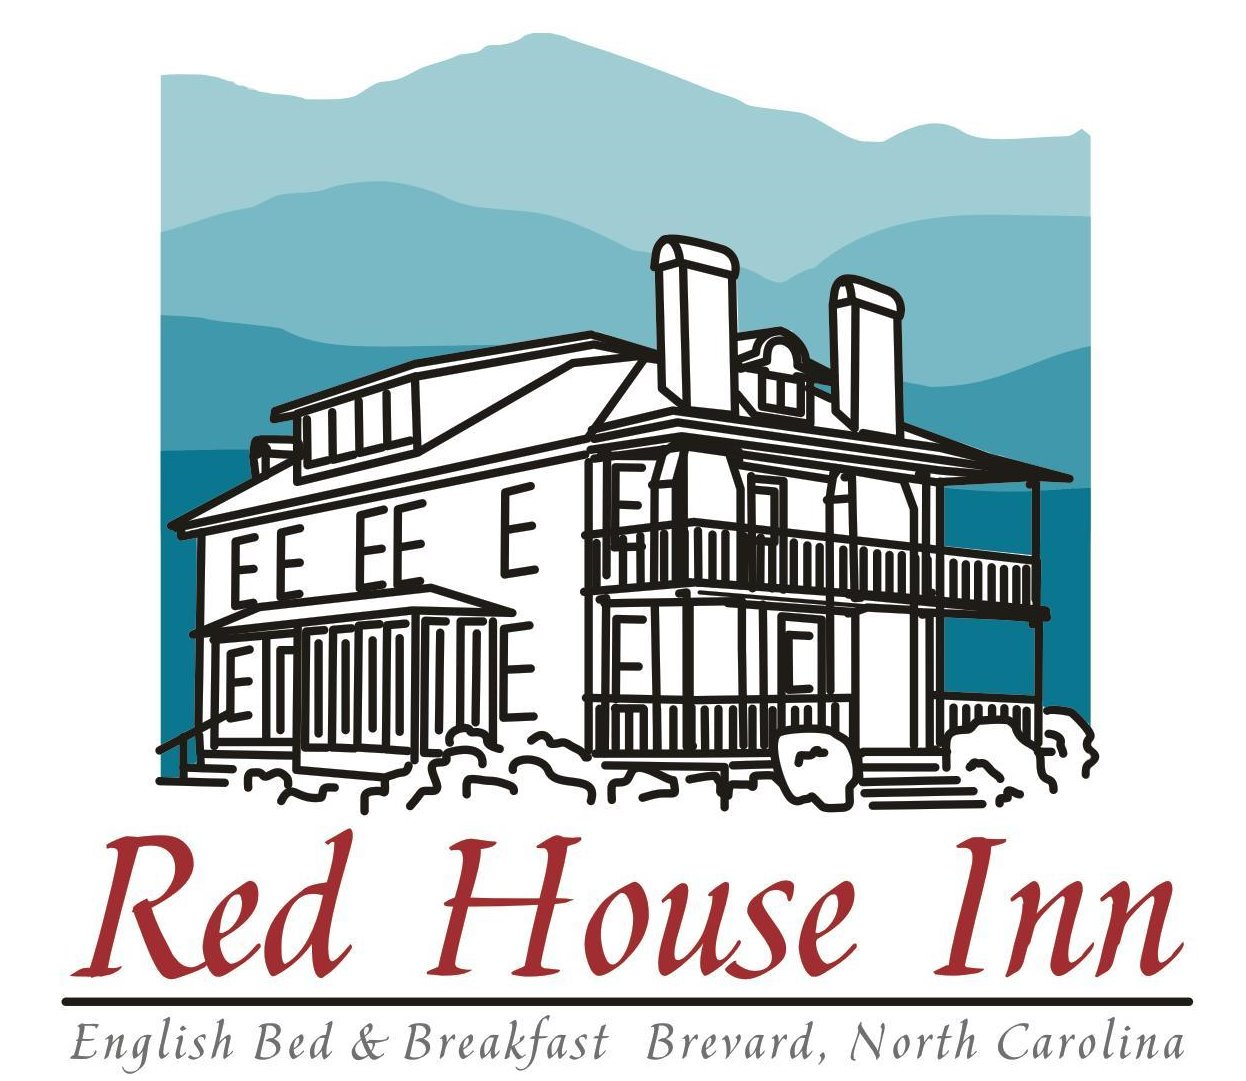 Red House Inn